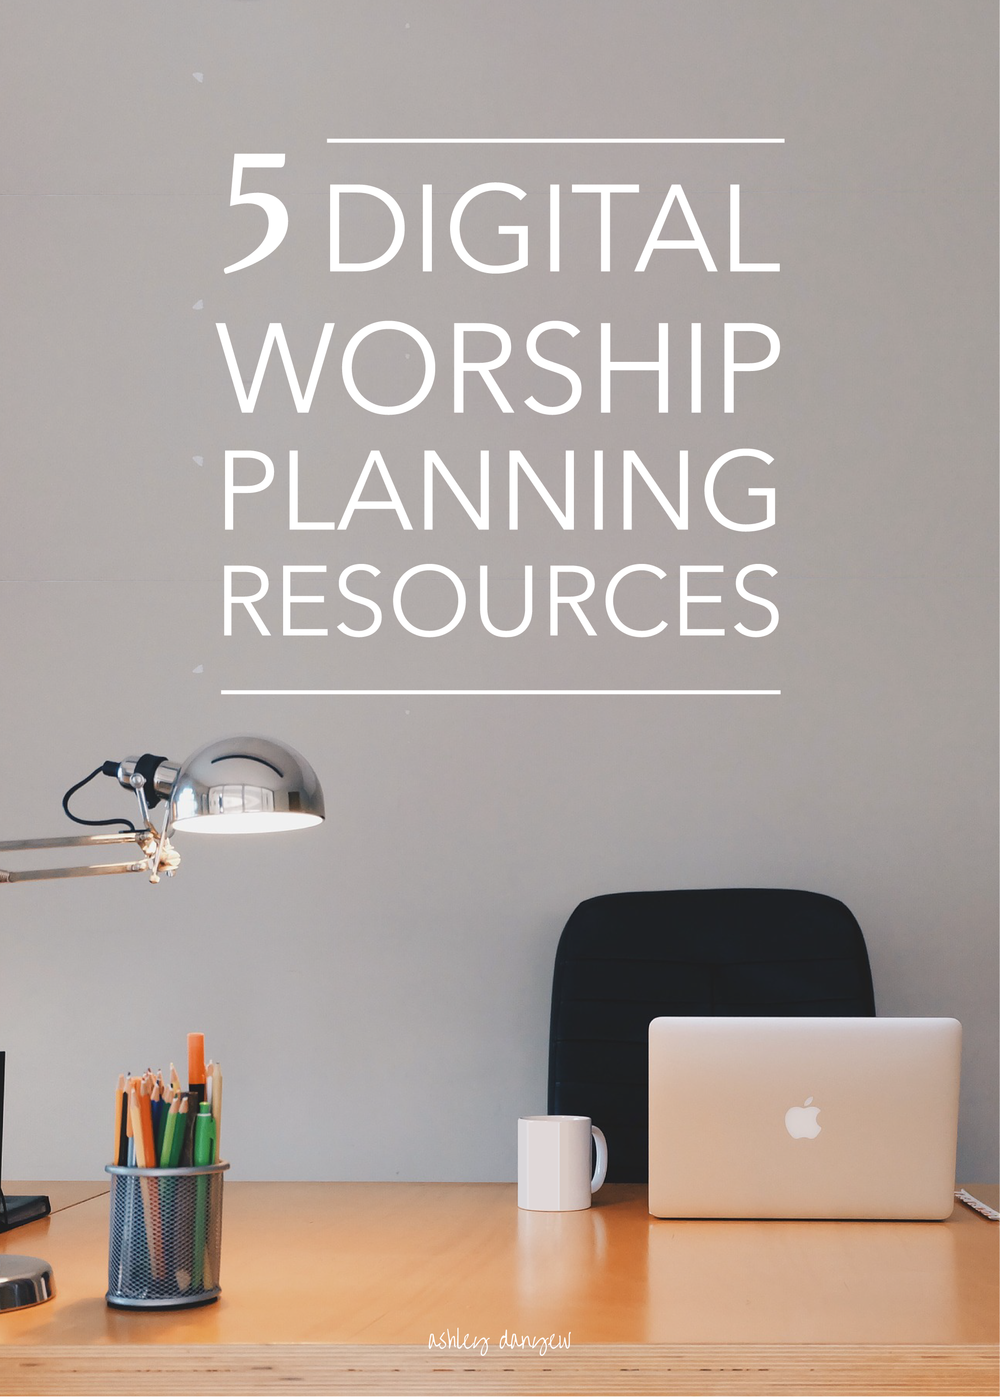 Copy of 5 Digital Worship Planning Resources